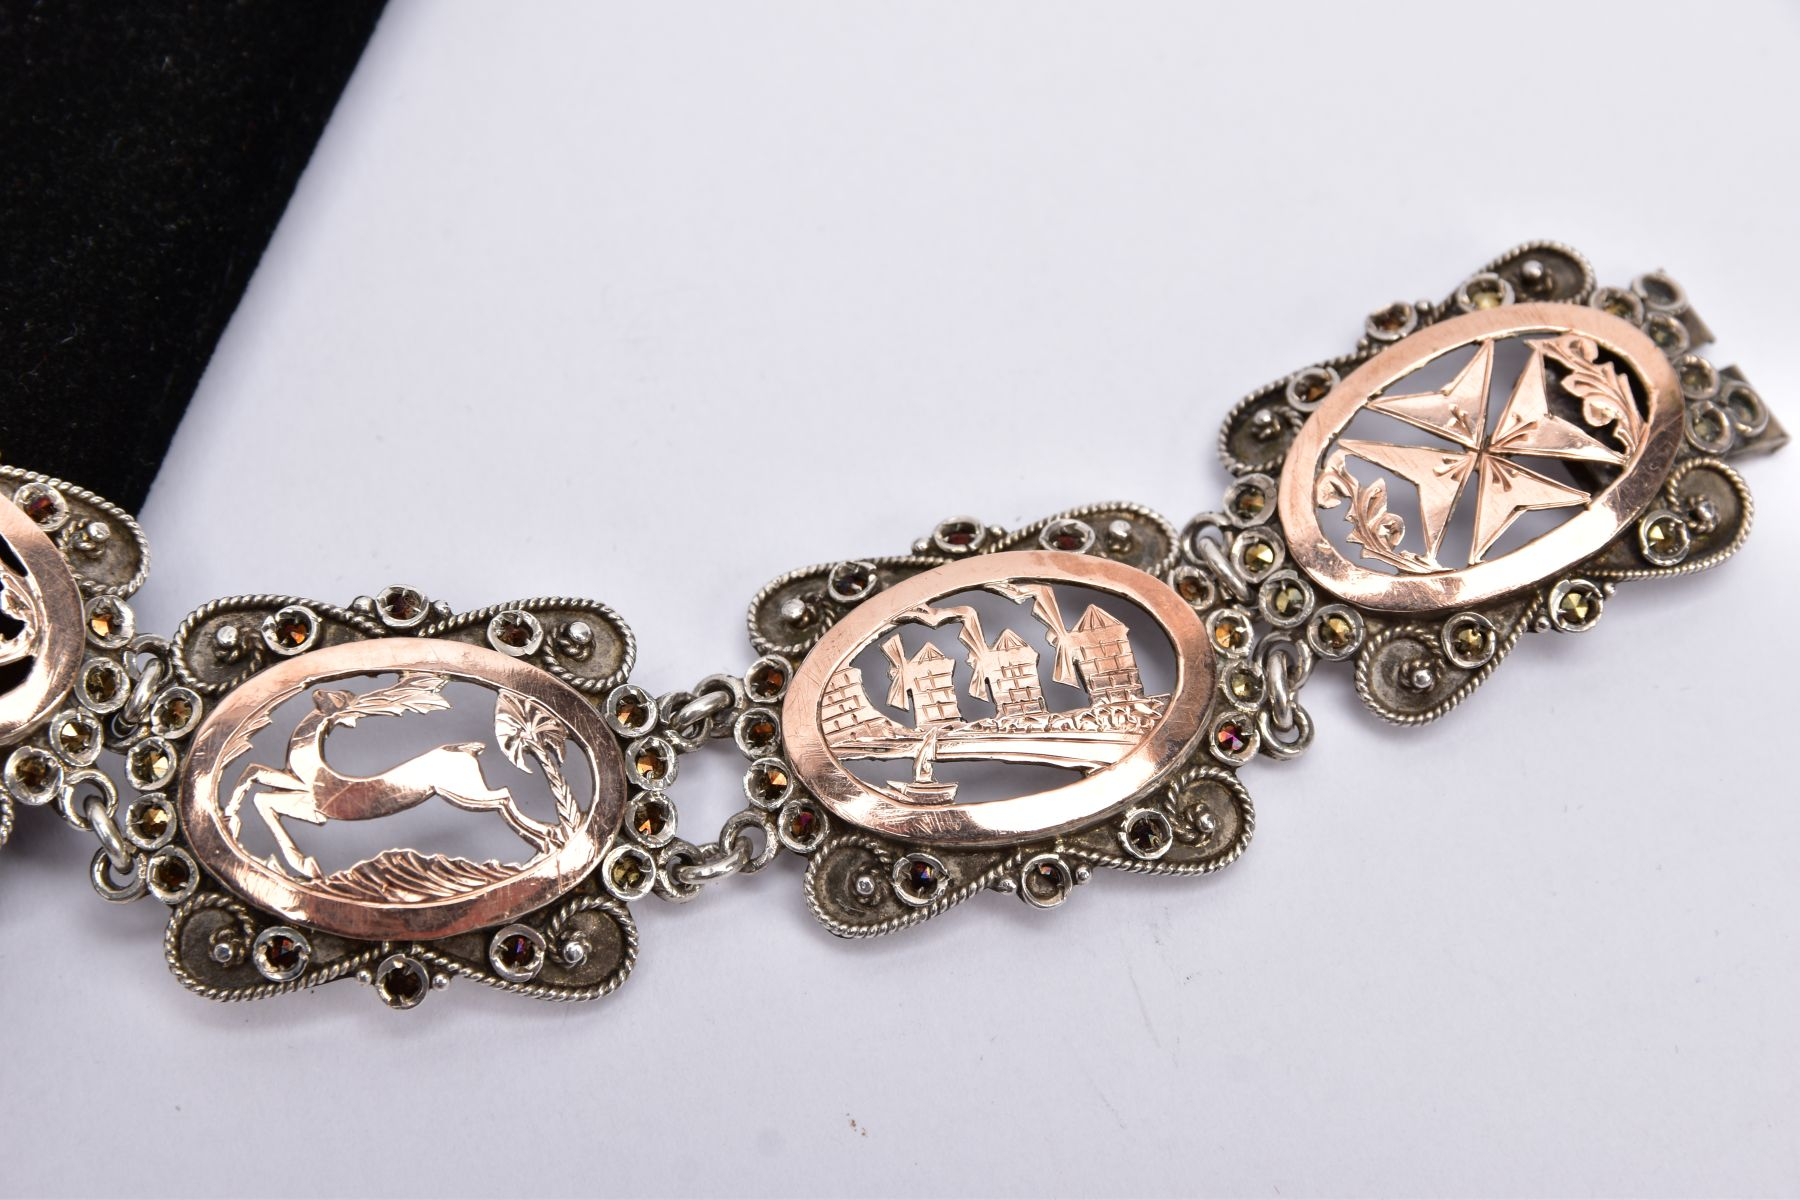 A WHITE METAL AND ROSE GOLD TONE BRACELET, designed with five openwork links, set with rose gold - Image 3 of 4